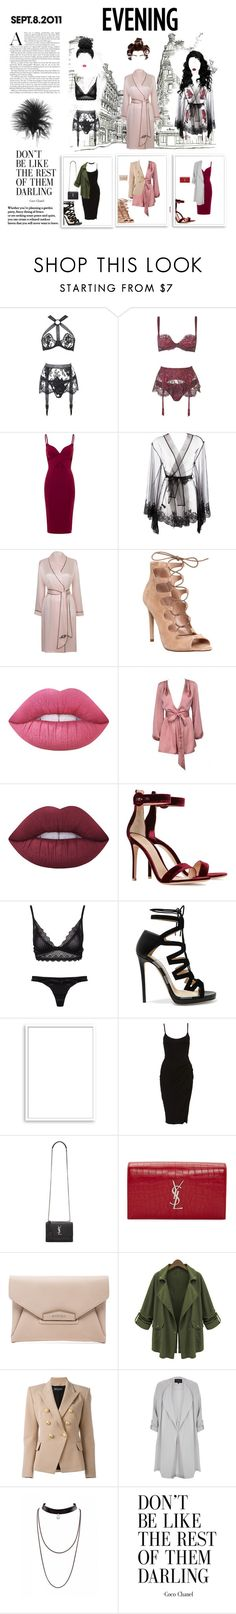 """""""Getting Reading"""" by mickie-pcosta ❤ liked on Polyvore featuring Agent Provocateur, I.D. SARRIERI, Office, Lime Crime, Gianvito Rossi, Wonderland, Jimmy Choo, Bomedo, Yves Saint Laurent and Givenchy"""